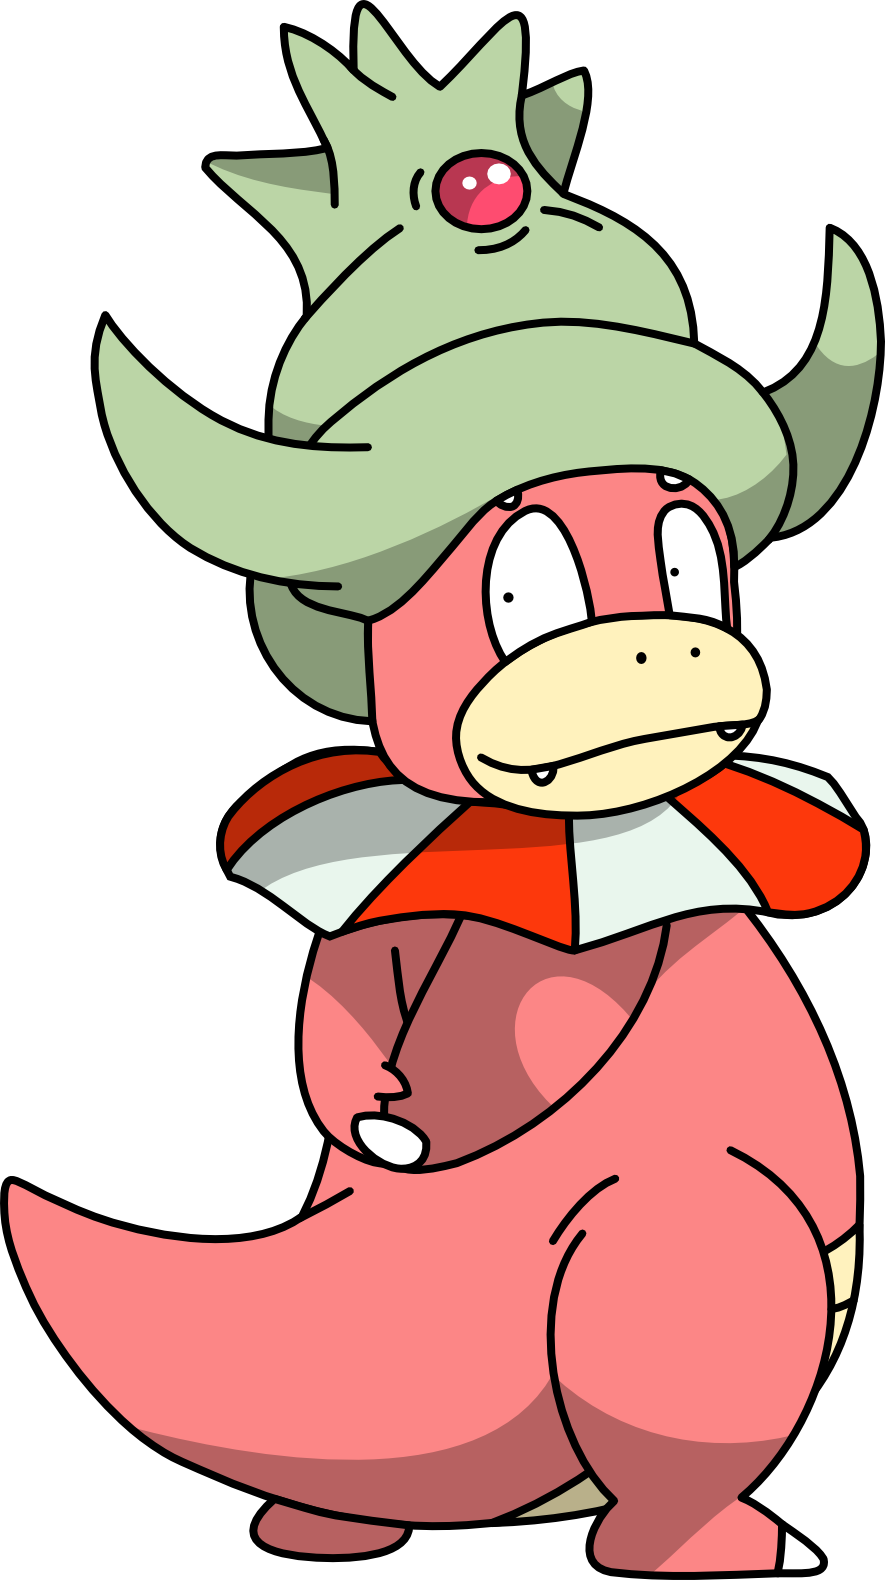 Slowking by Mighty355 on DeviantArt